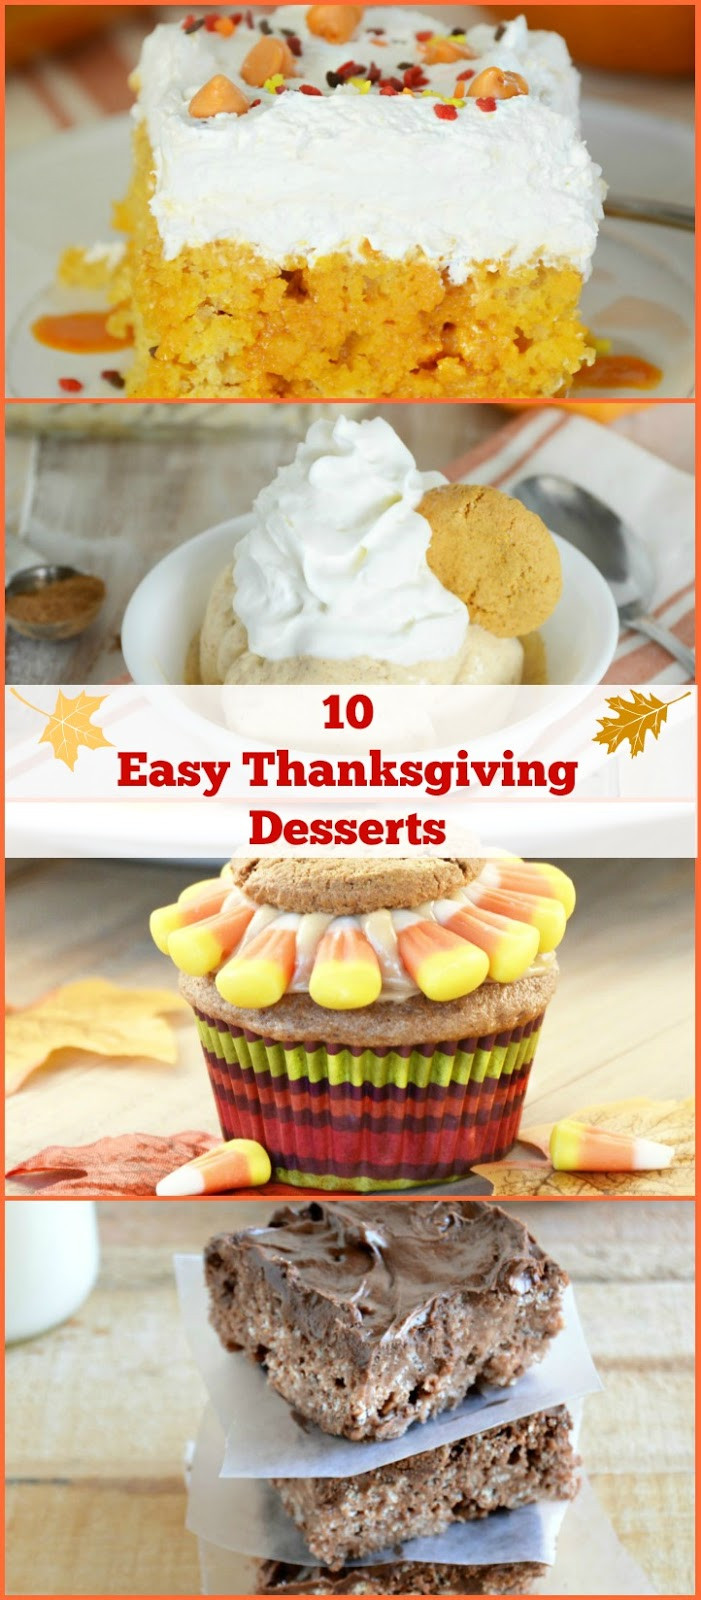 Ideas For Thanksgiving Desserts  10 Easy Thanksgiving Dessert Ideas Meatloaf and Melodrama